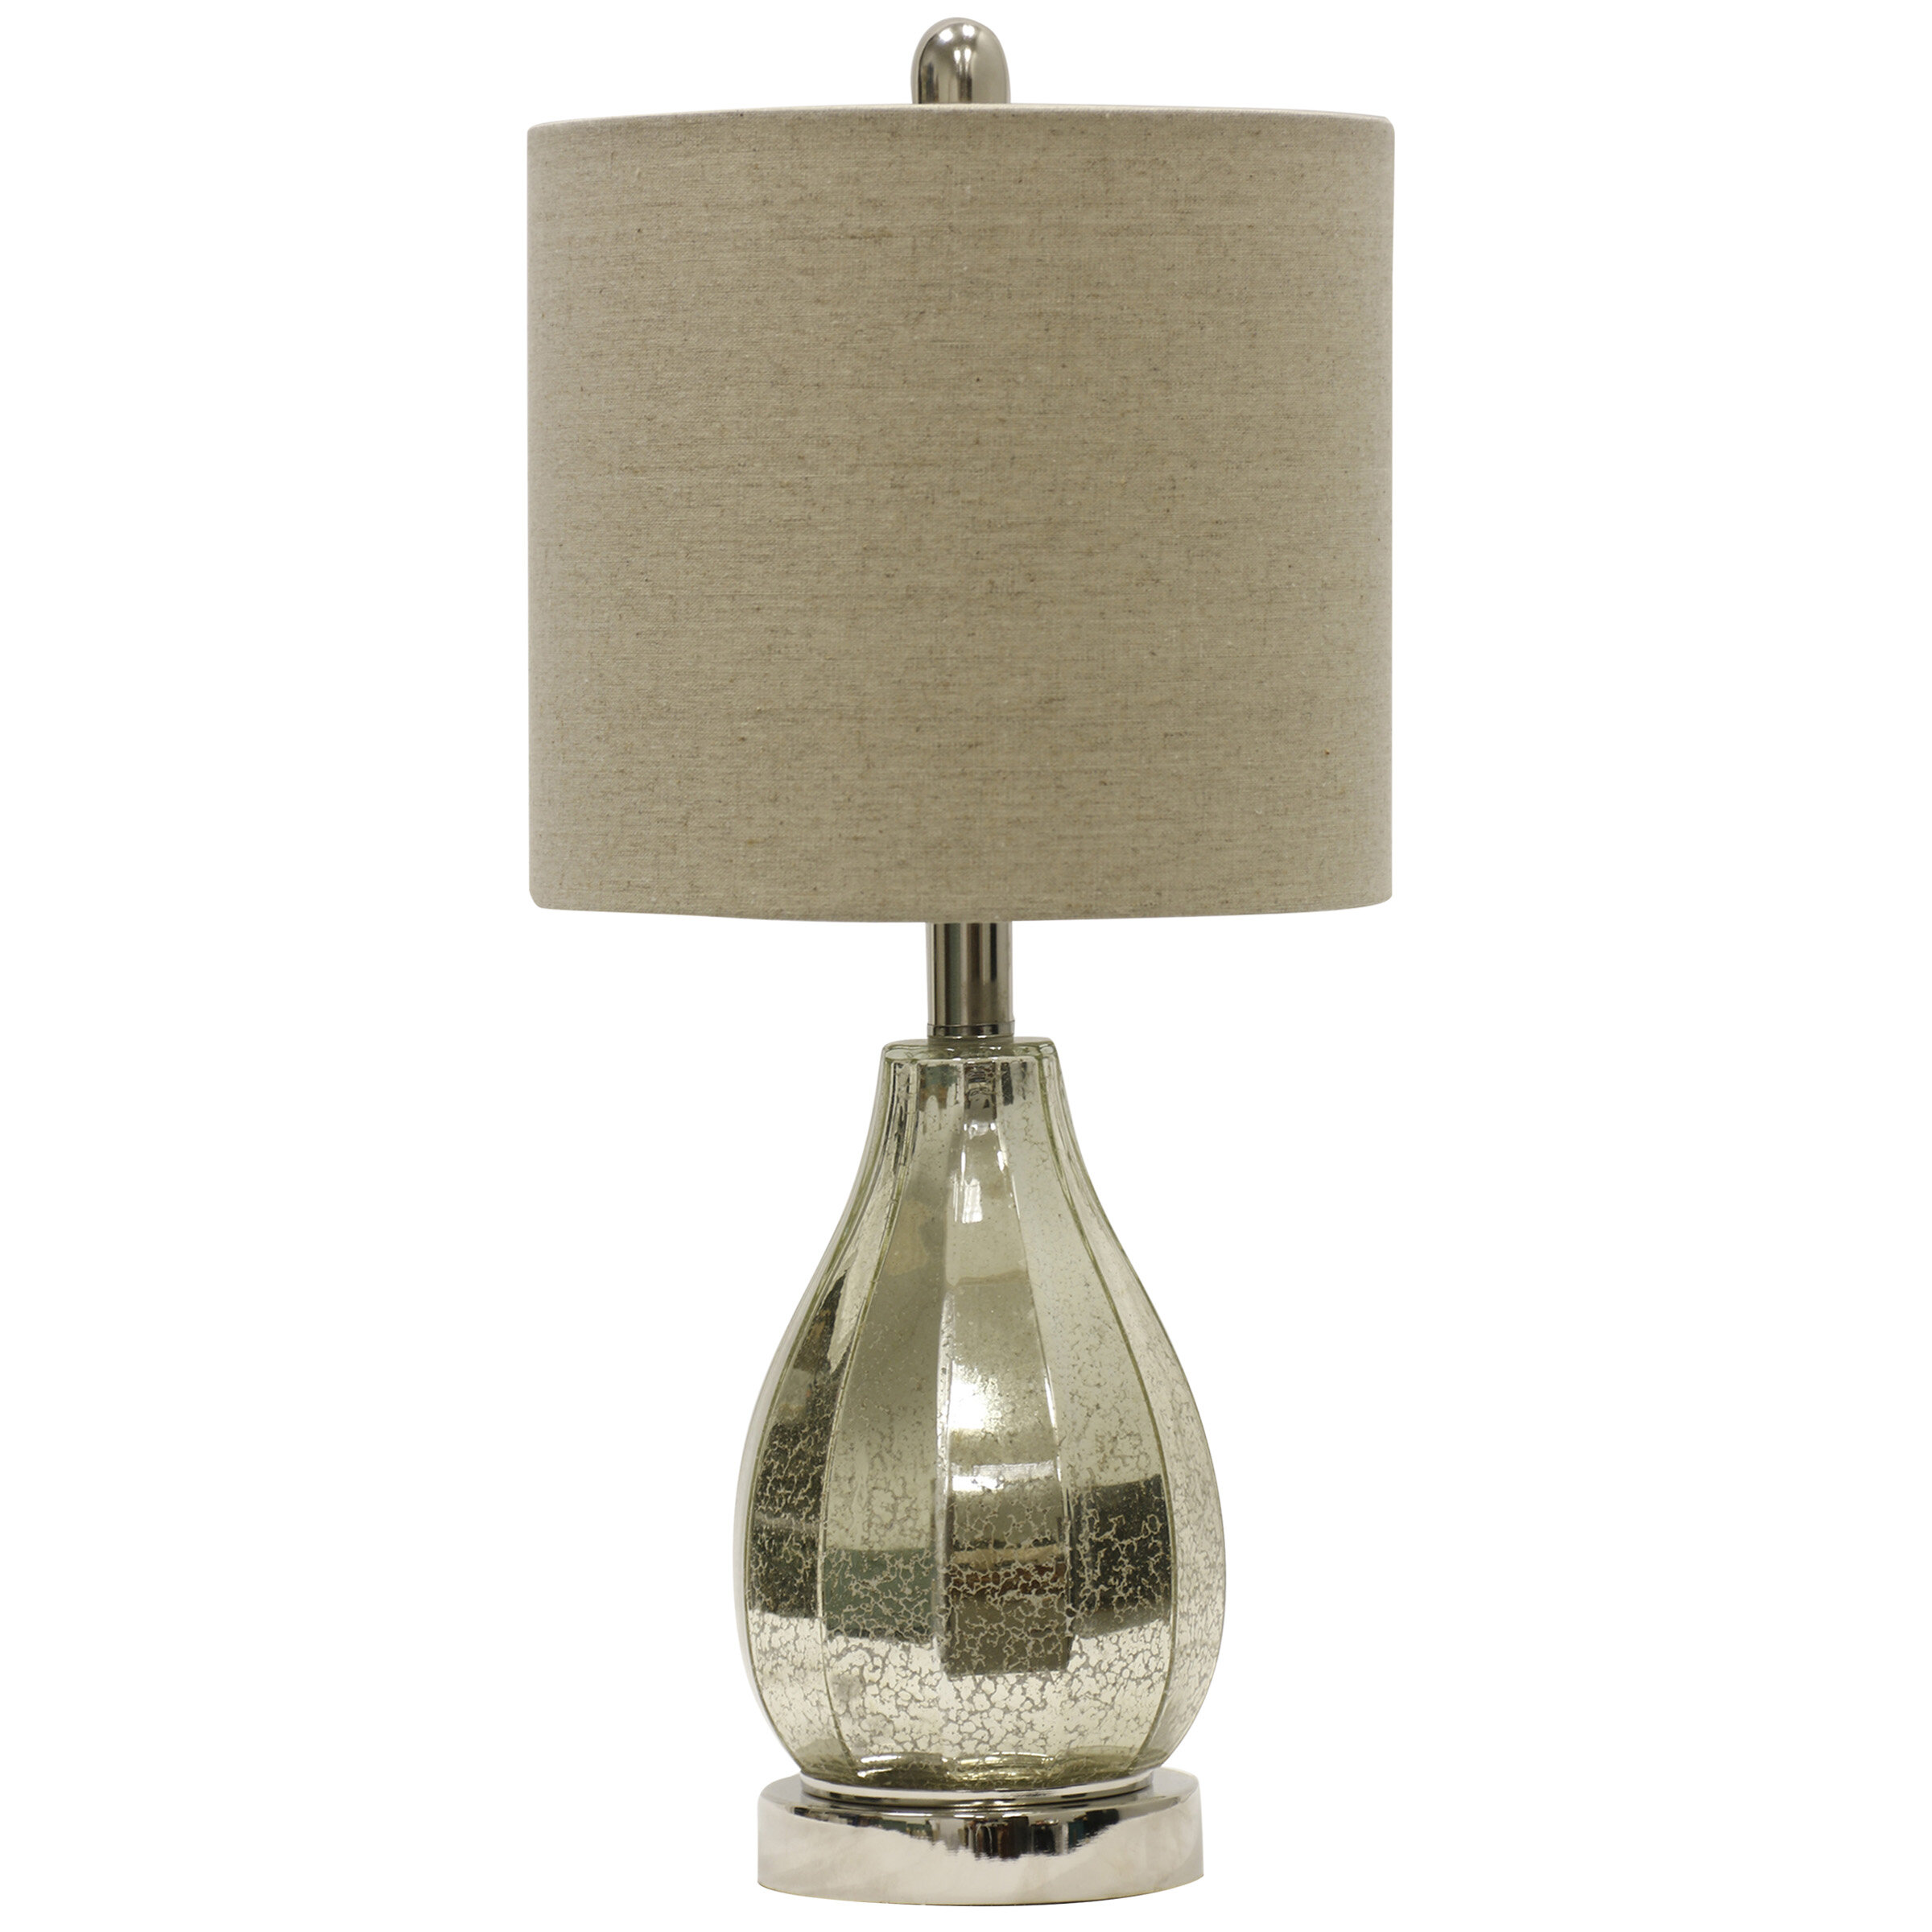 Mcbain 21 25 table lamp